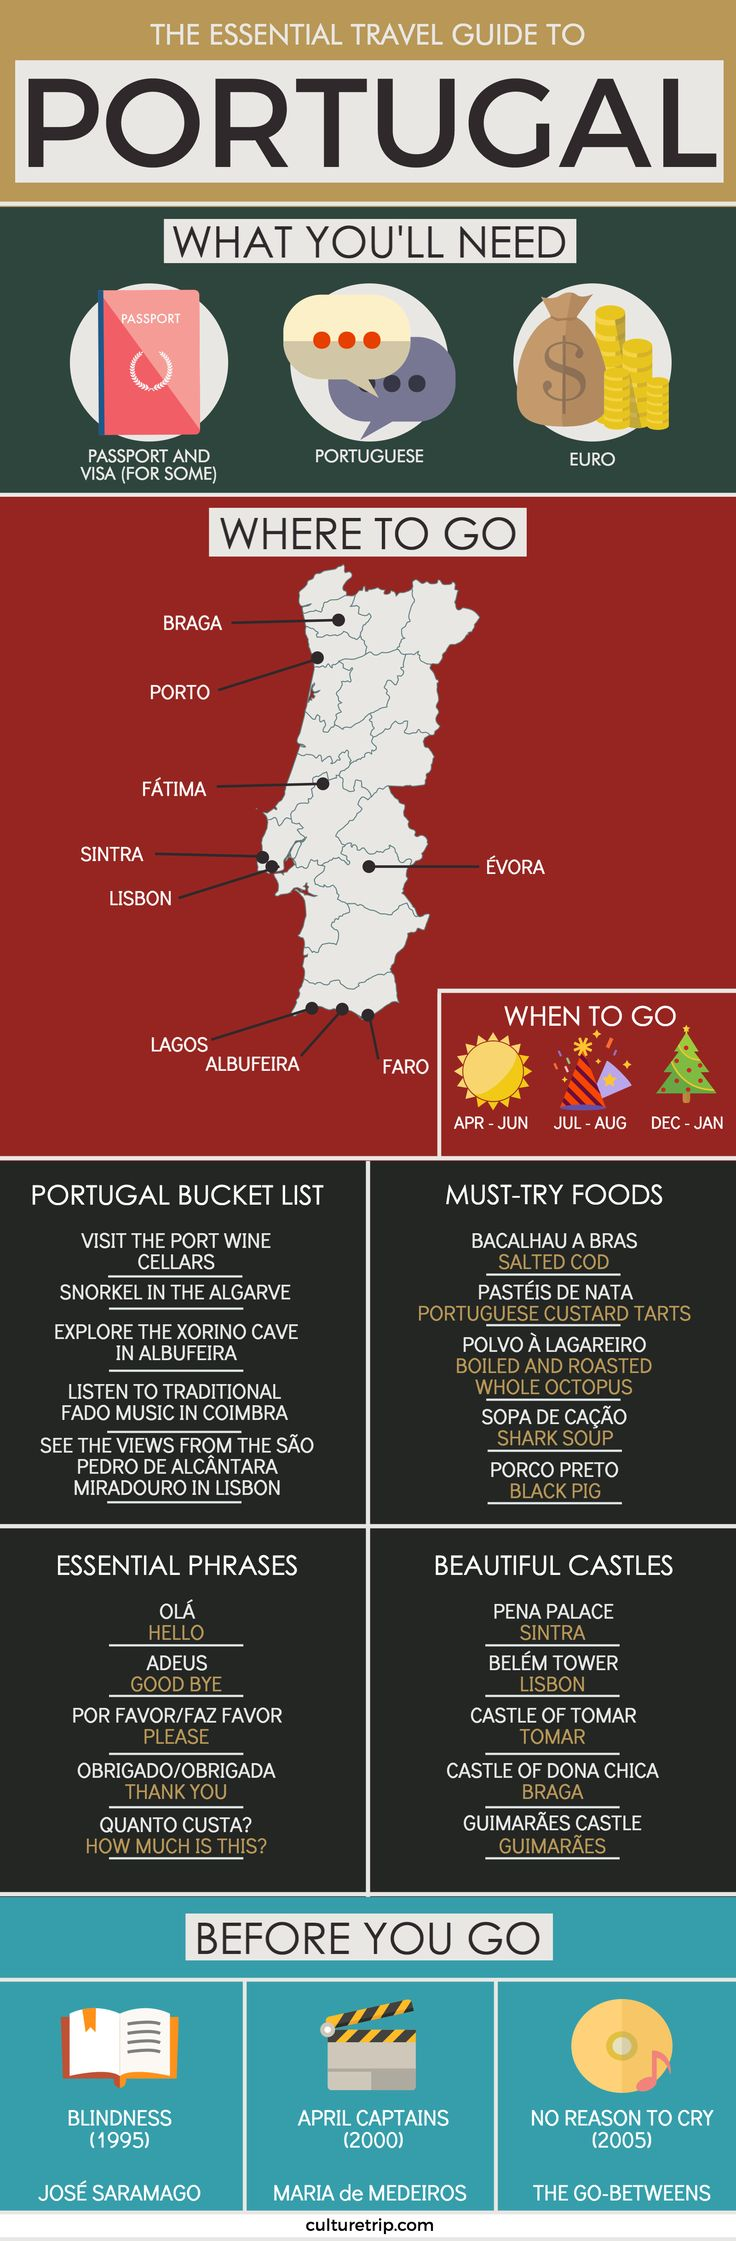 The Ultimate Guide To Portugal By The Culture Trip